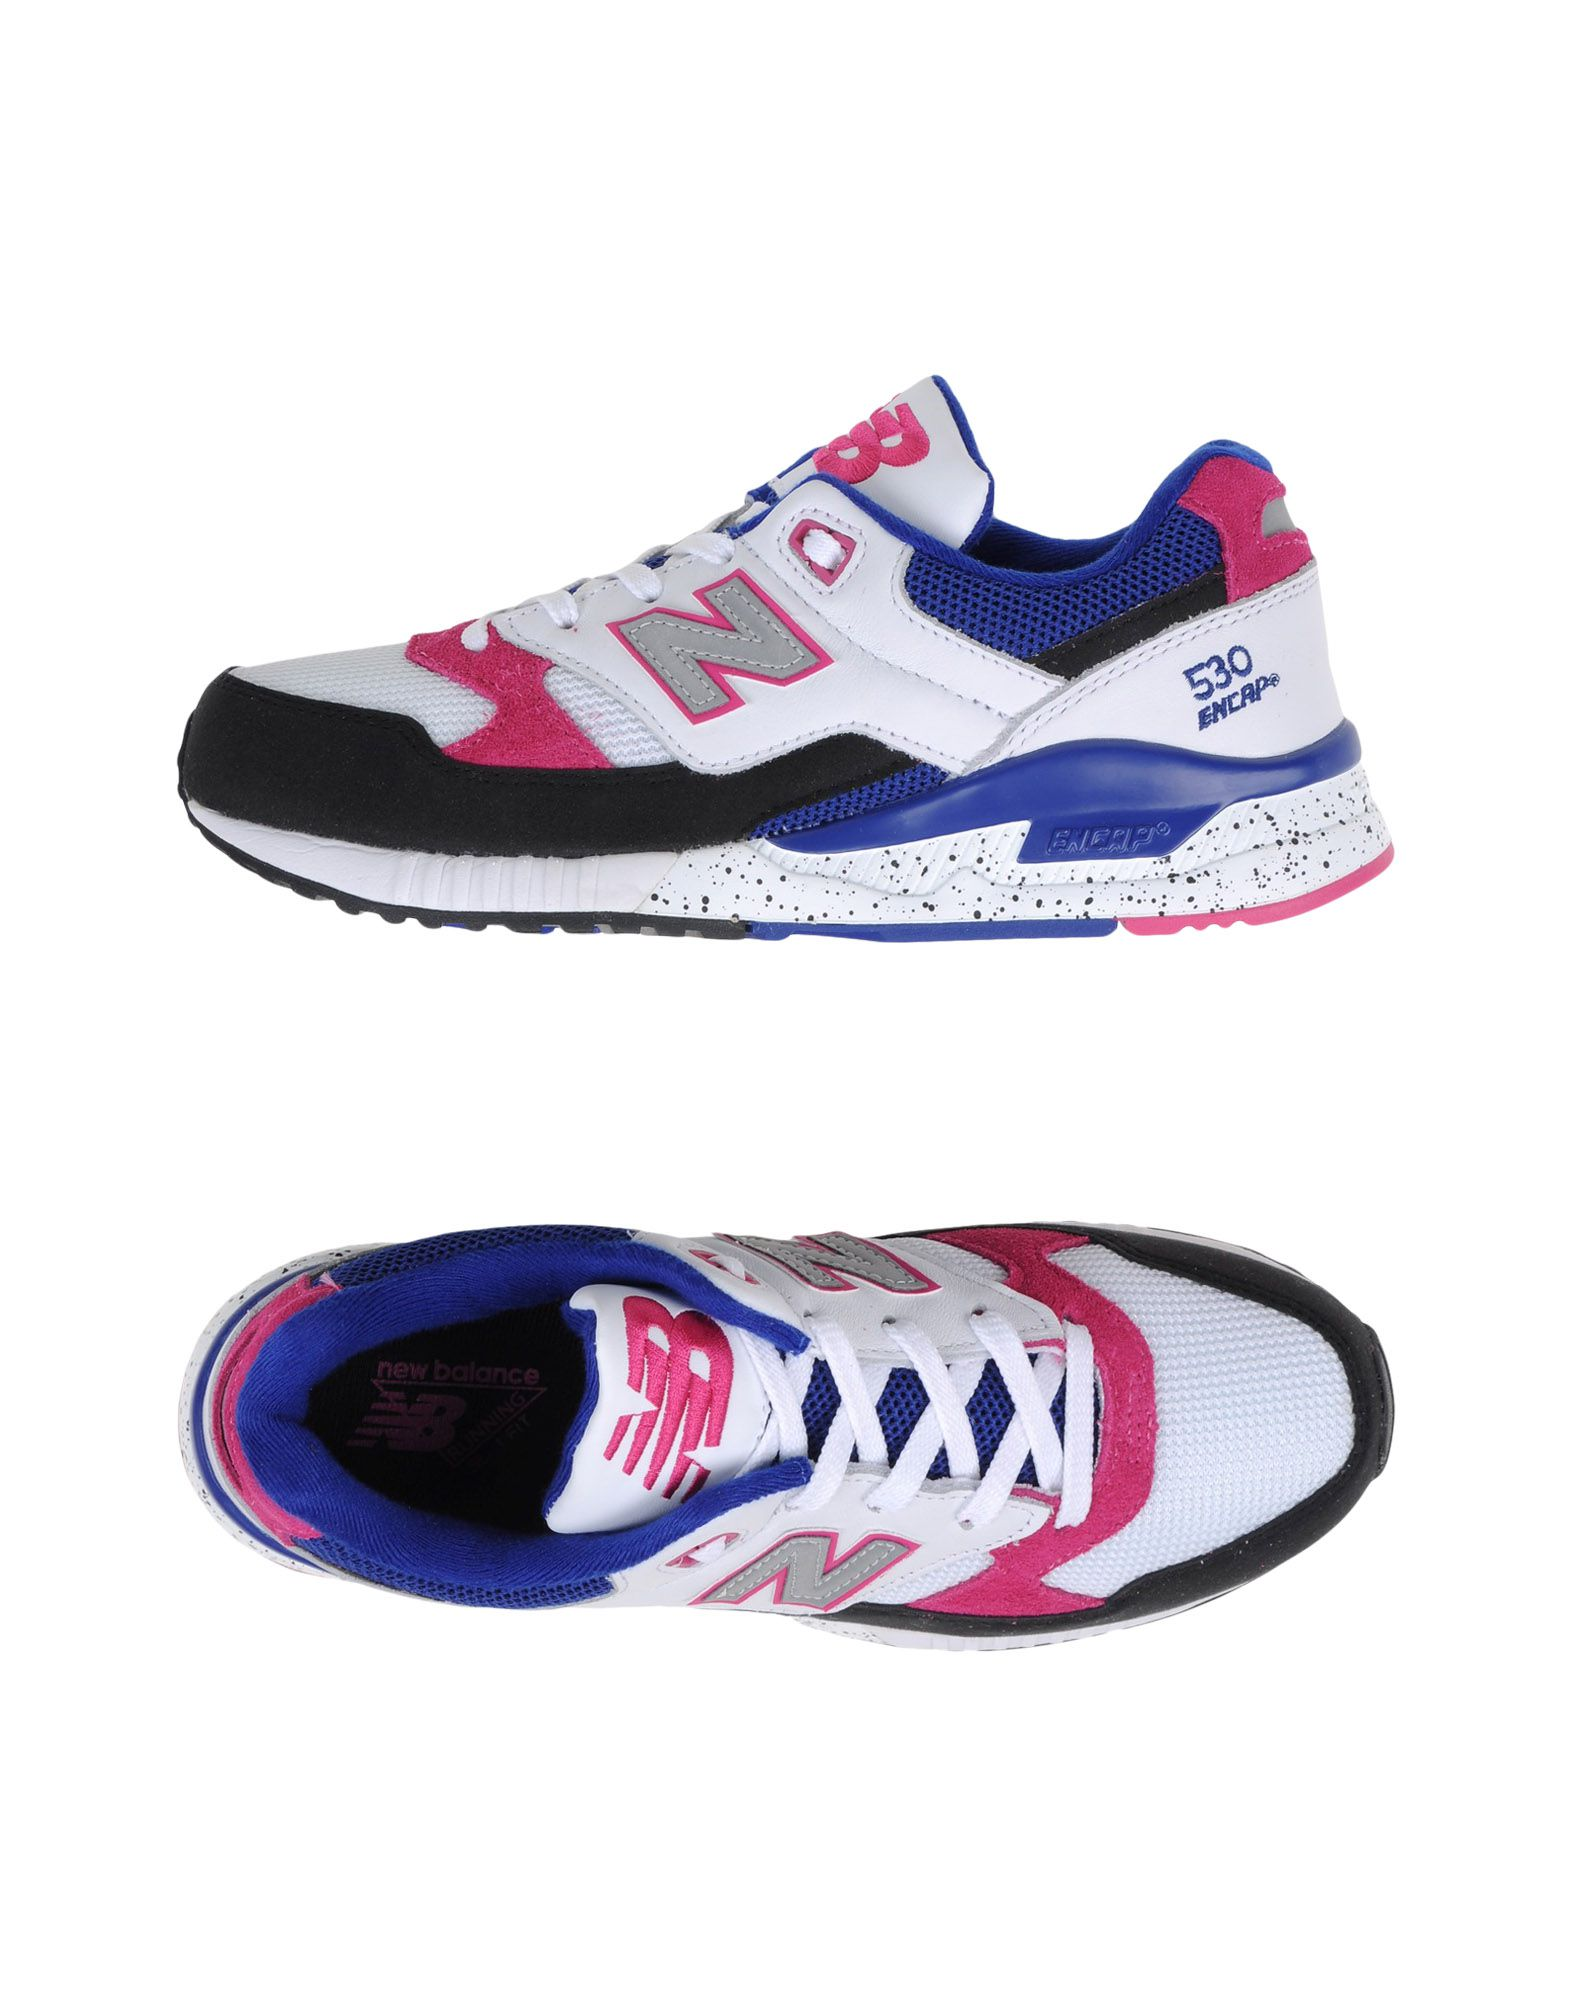 Sneakers New Balance 530 Platinum Street - Femme - Sneakers New Balance sur